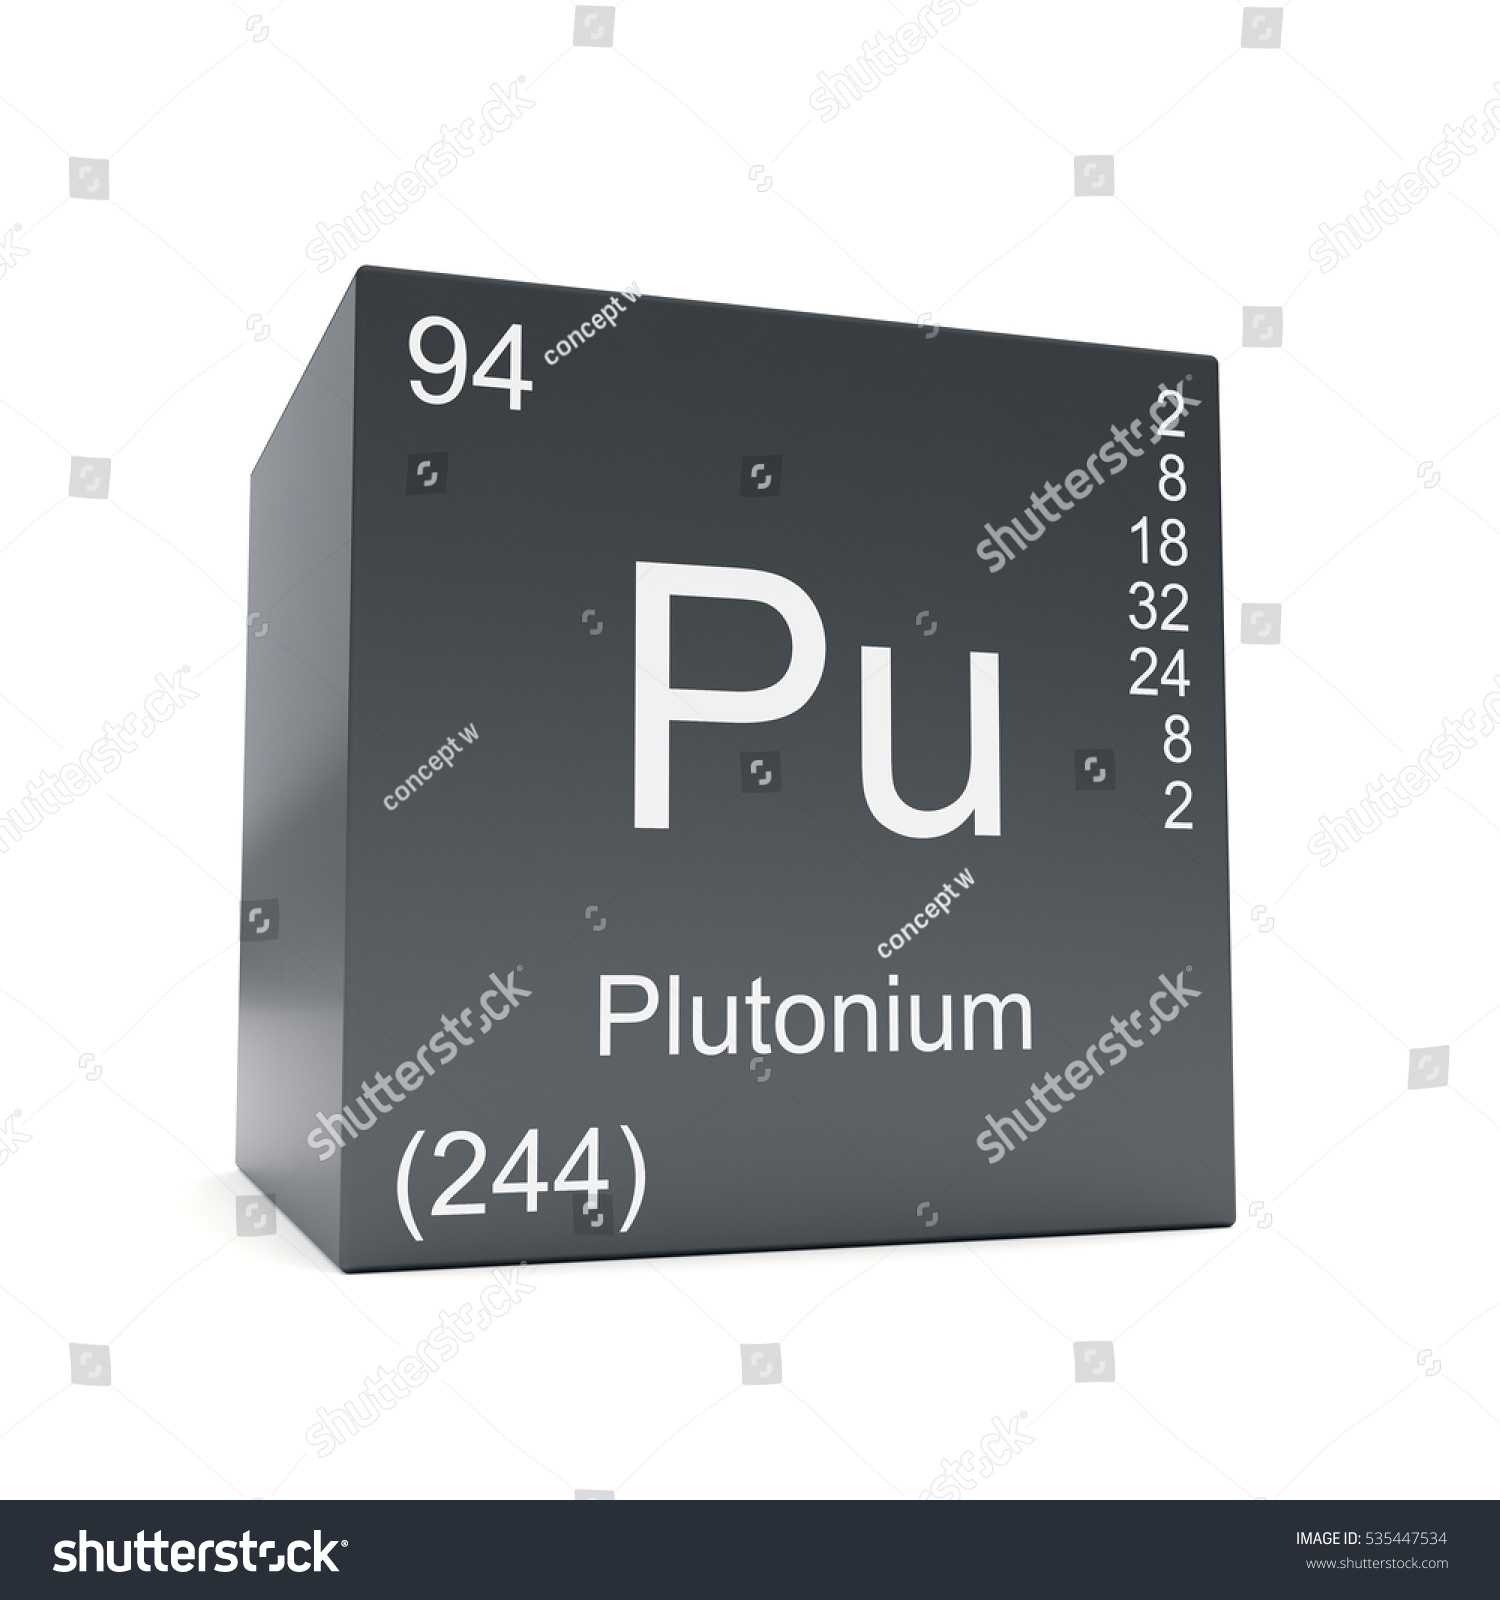 Plutonium on periodic table image collections periodic table images plutonium symbol periodic table image collections periodic table plutonium on periodic table images periodic table images gamestrikefo Image collections